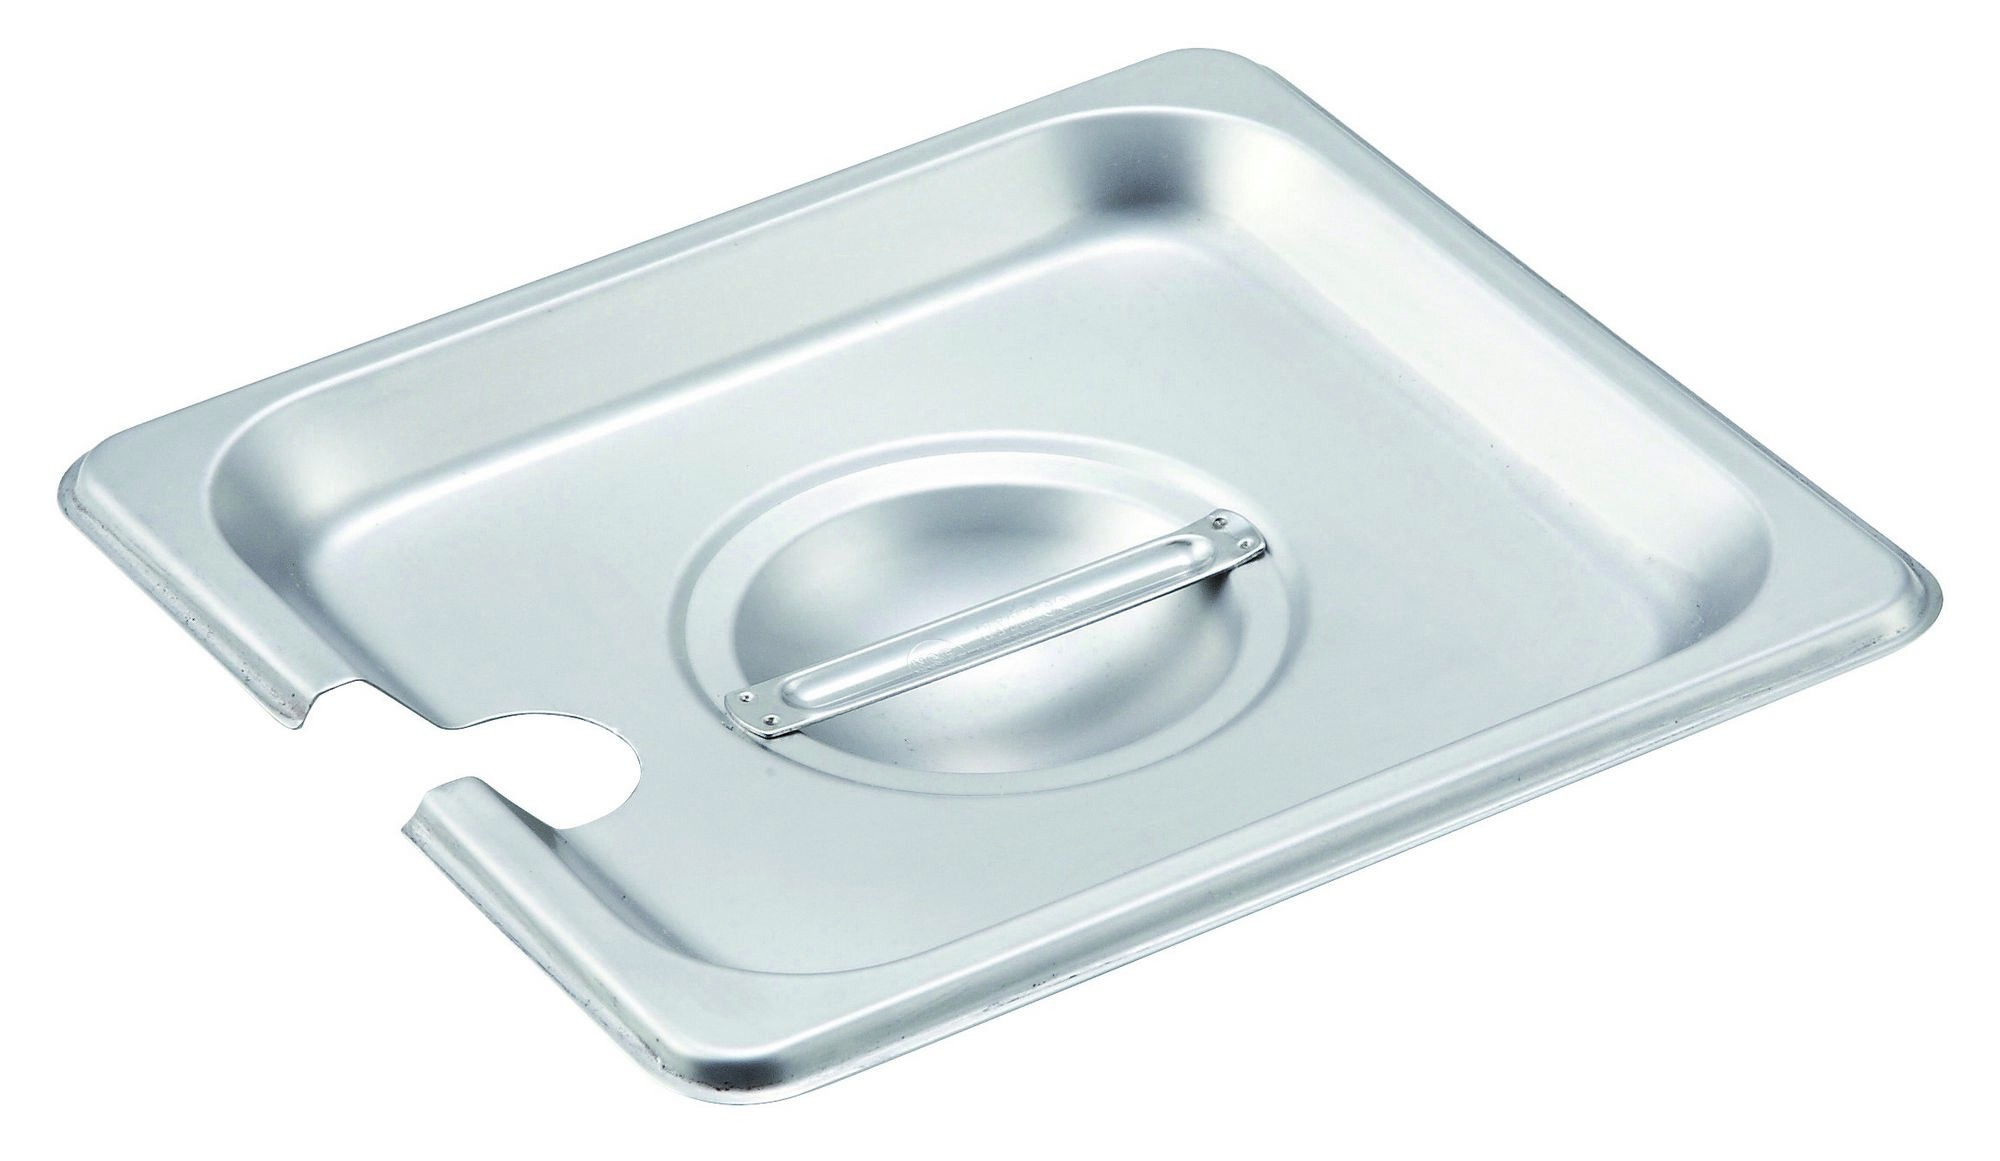 Winco SPCS Slotted Stainless Steel One-Sixth Size Steam Table Pan Cover